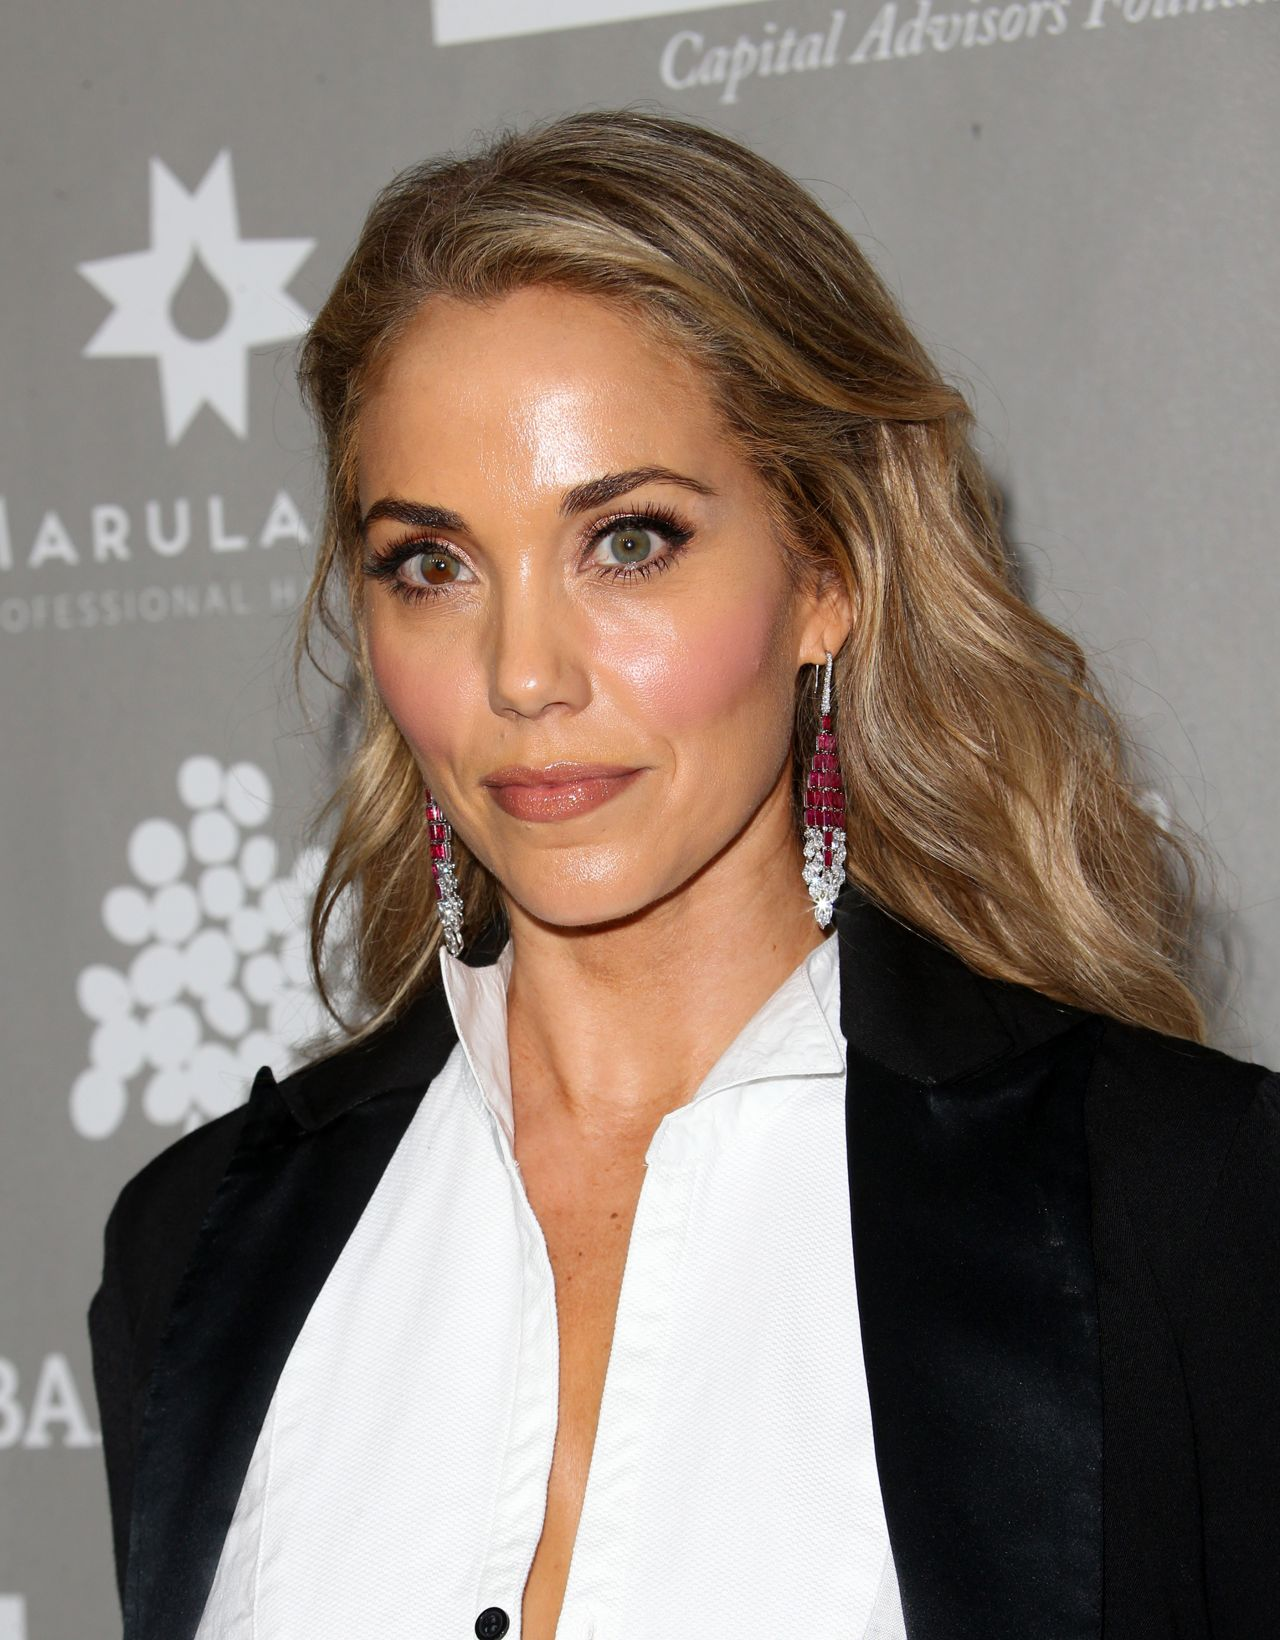 Elizabeth Berkley photo #687121